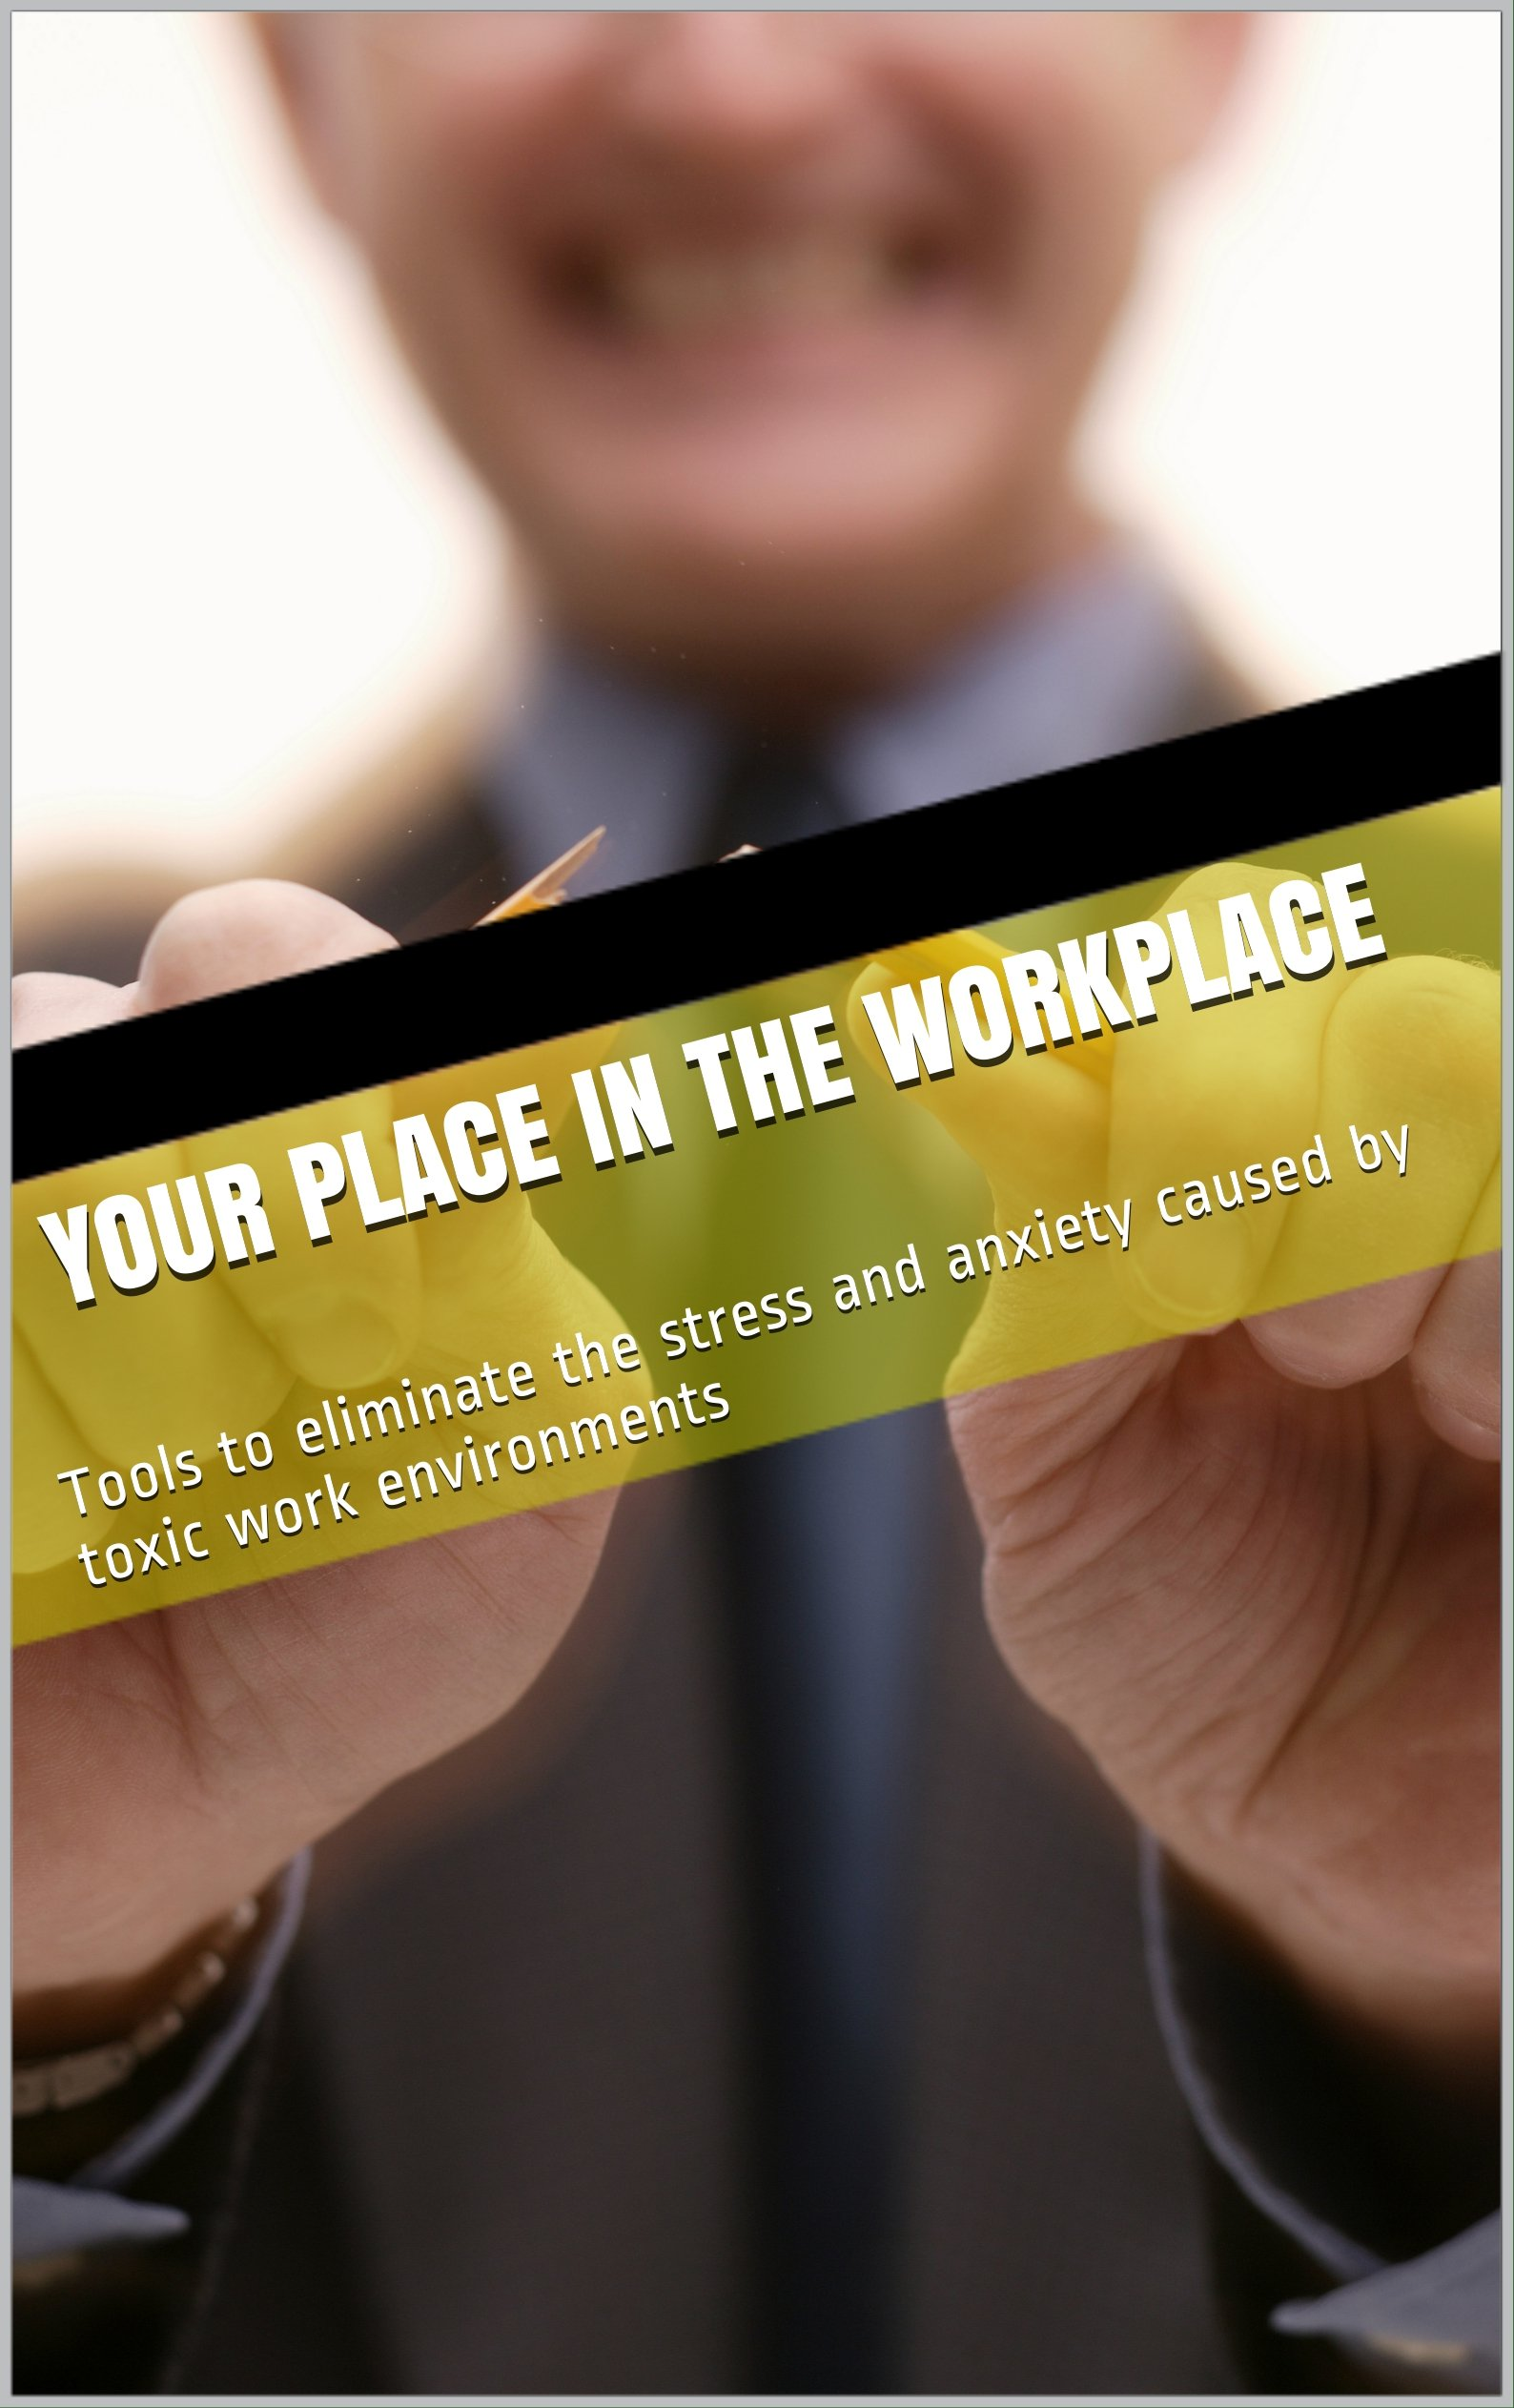 Your Place in the Workplace: Tools to Eliminate Stress and Anxiety Due to Toxic Work Environments